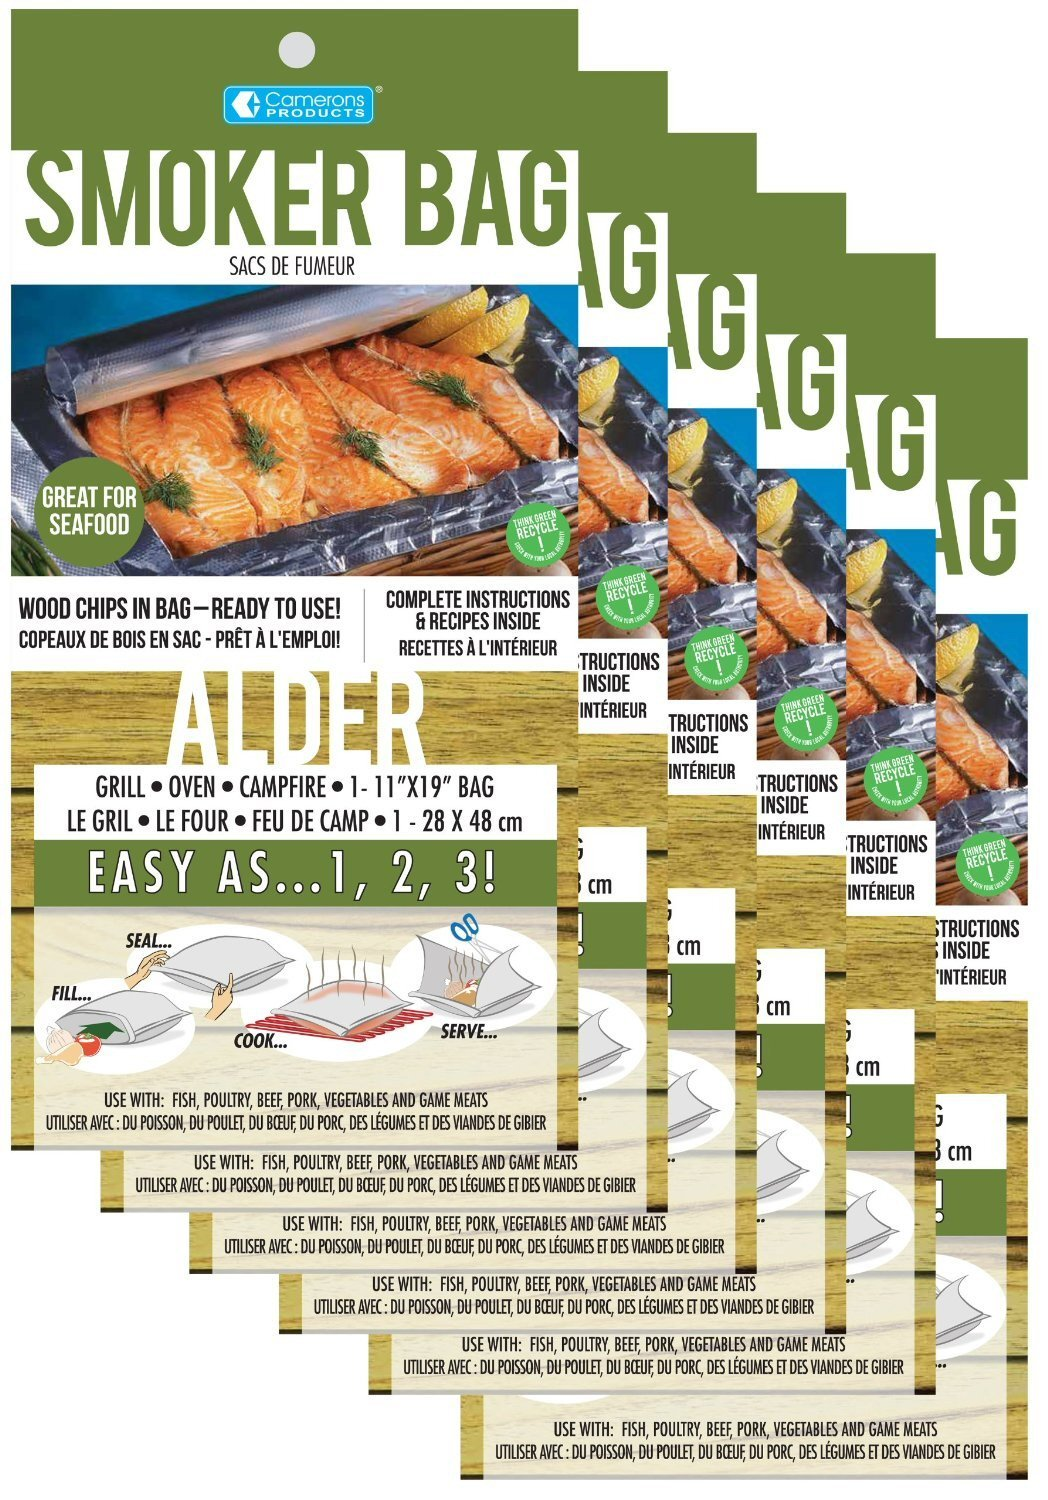 Savu Smoker Bag, Alder, For Oven or Grill, 28 x 42cm Bags (Pack of 12) by SAVU